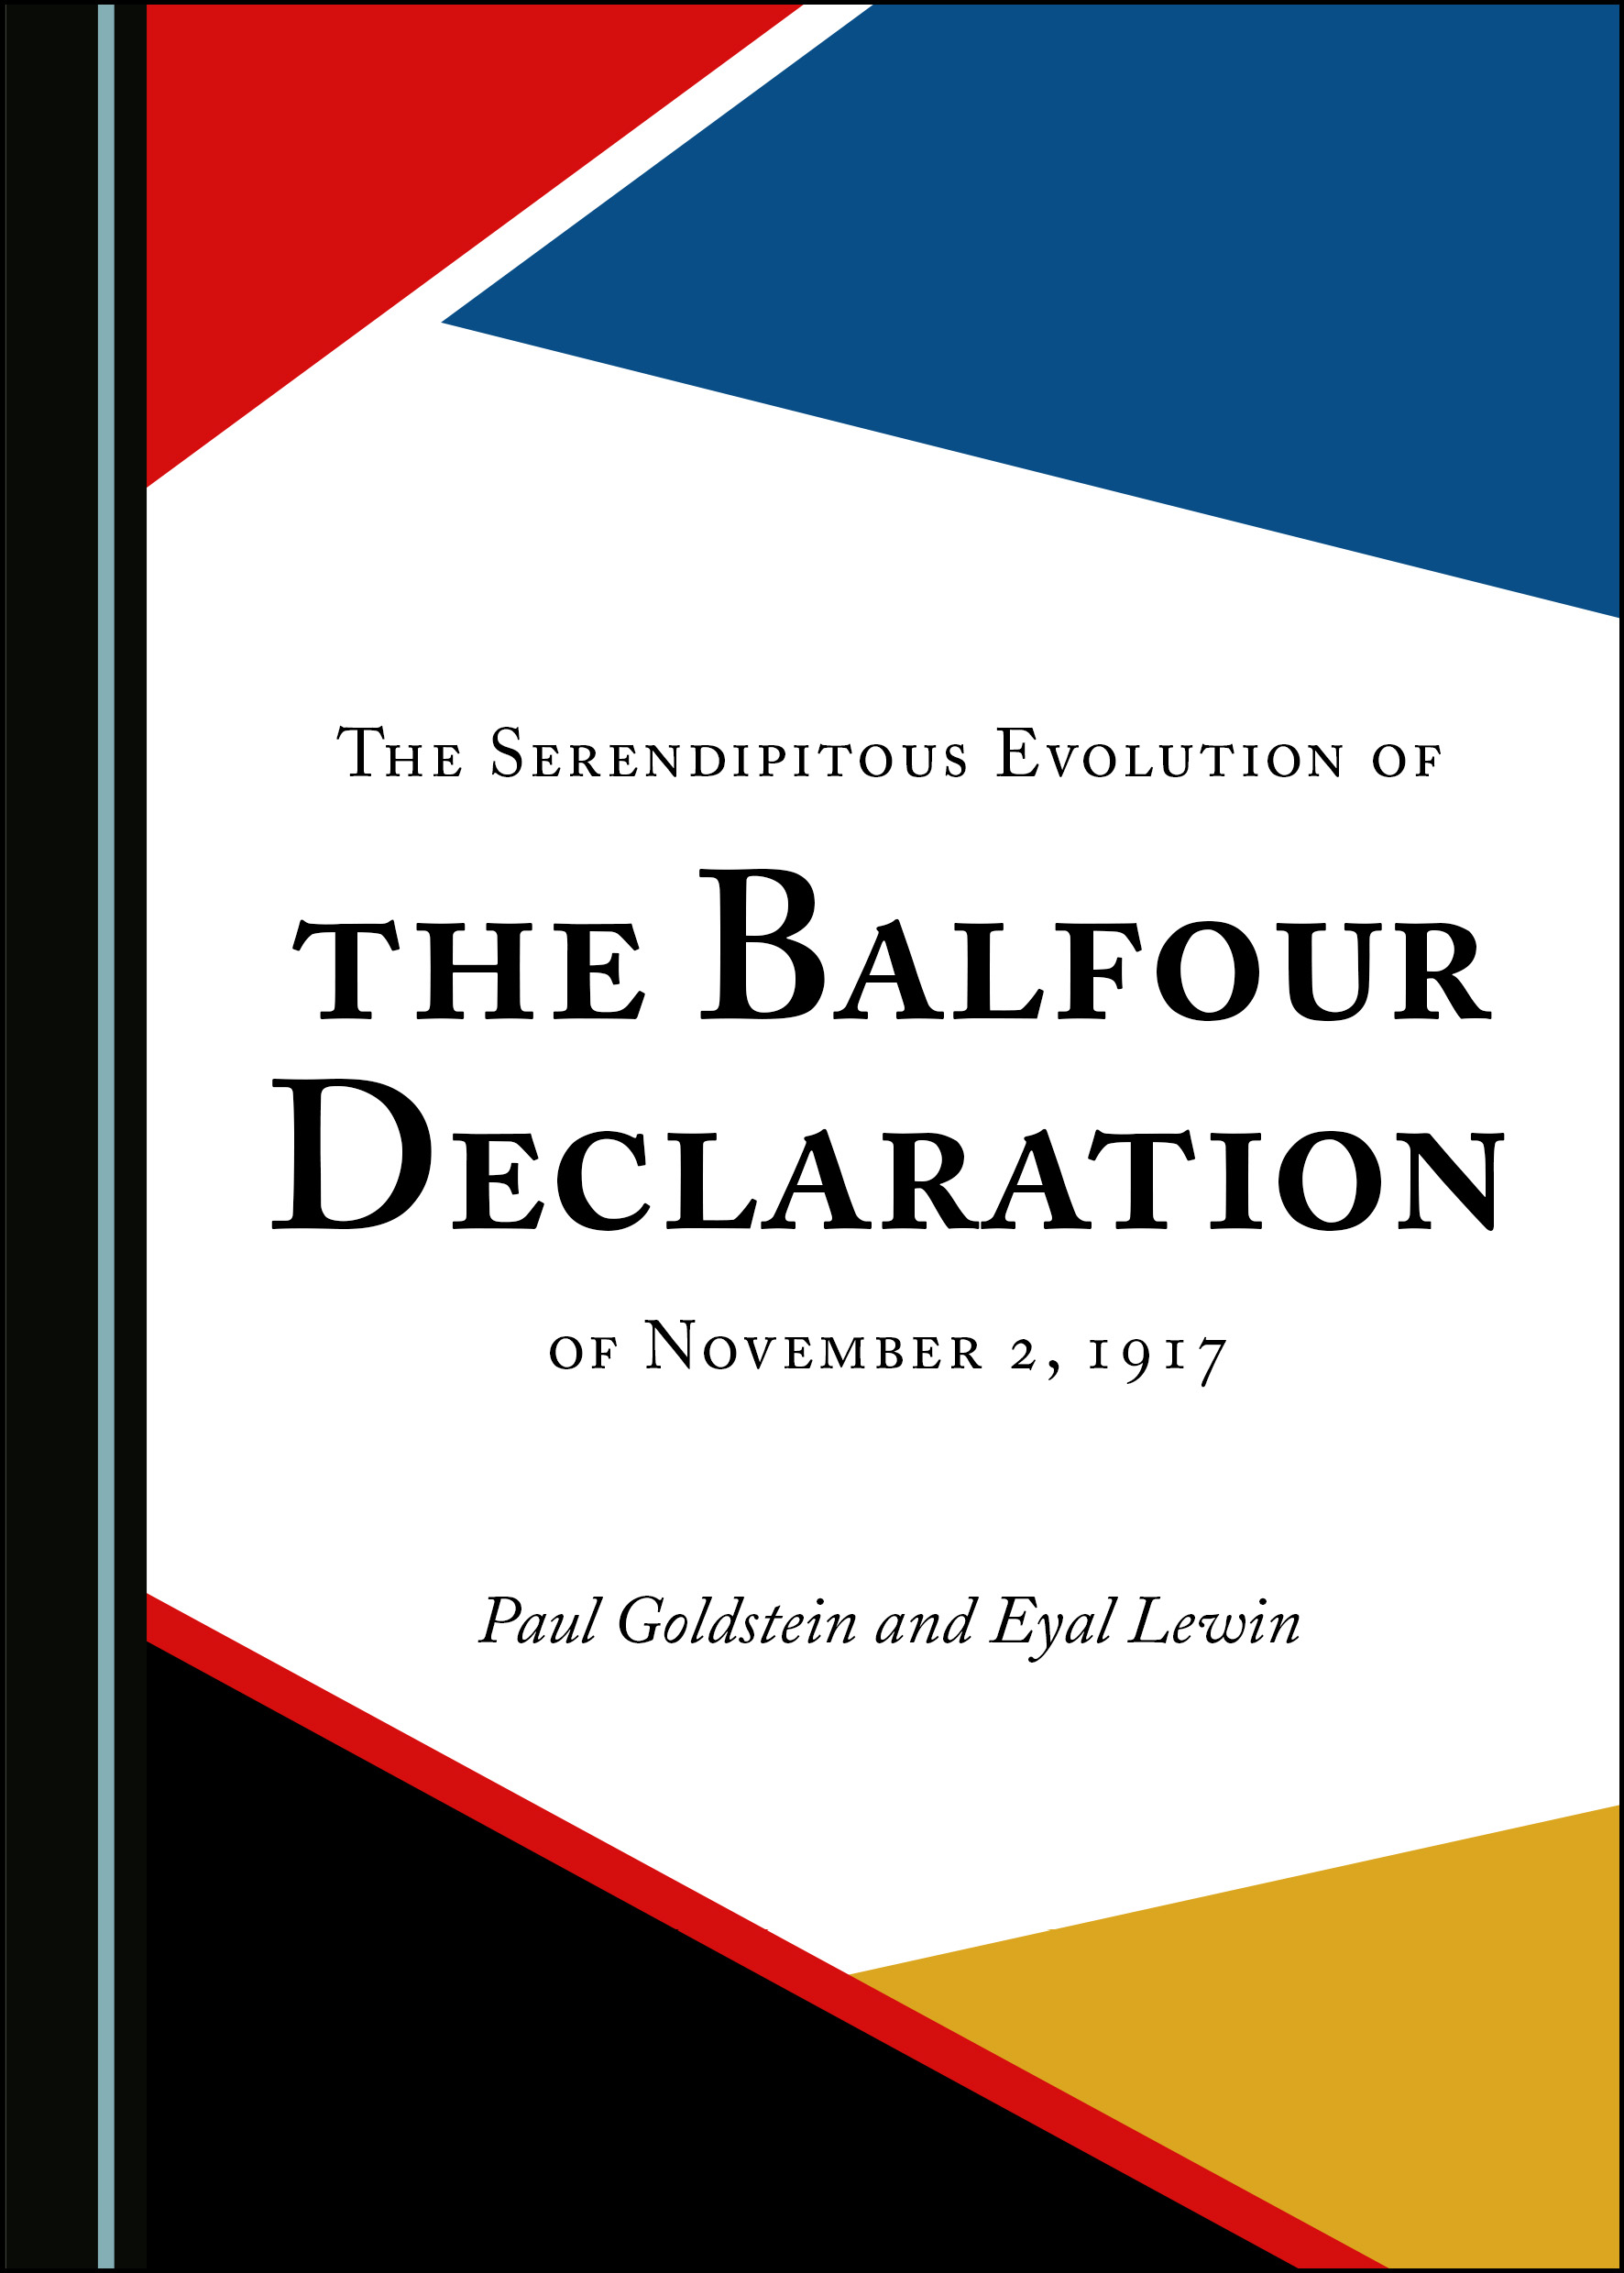 The Serendipitous Evolution of the Balfour Declaration of November 2, 1917